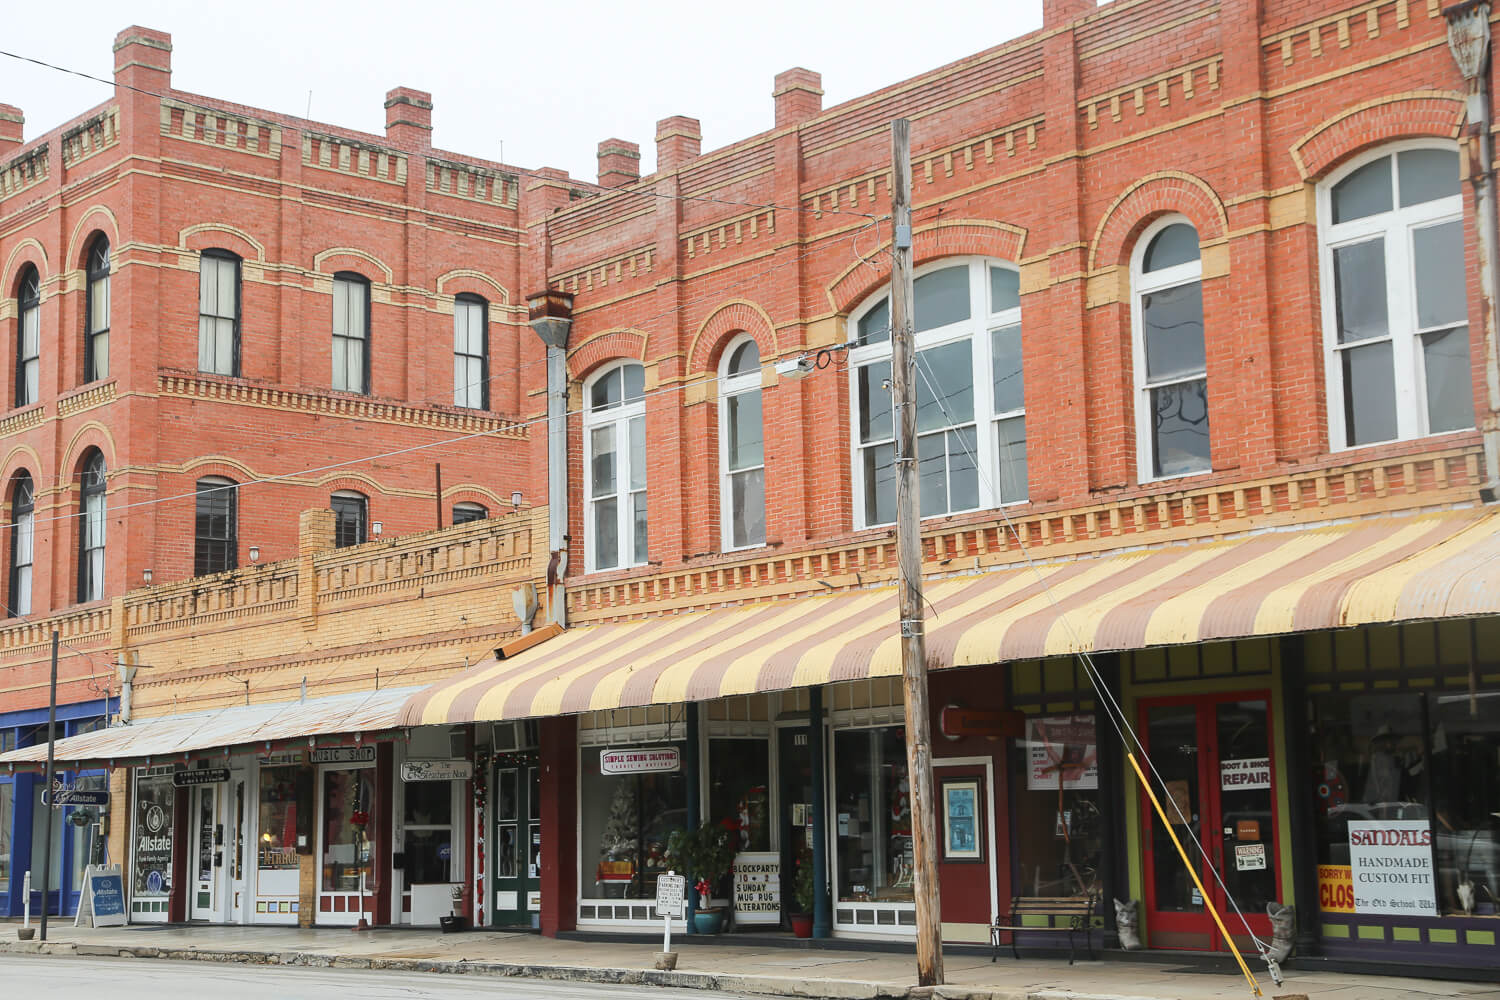 The downtown in Lockhart